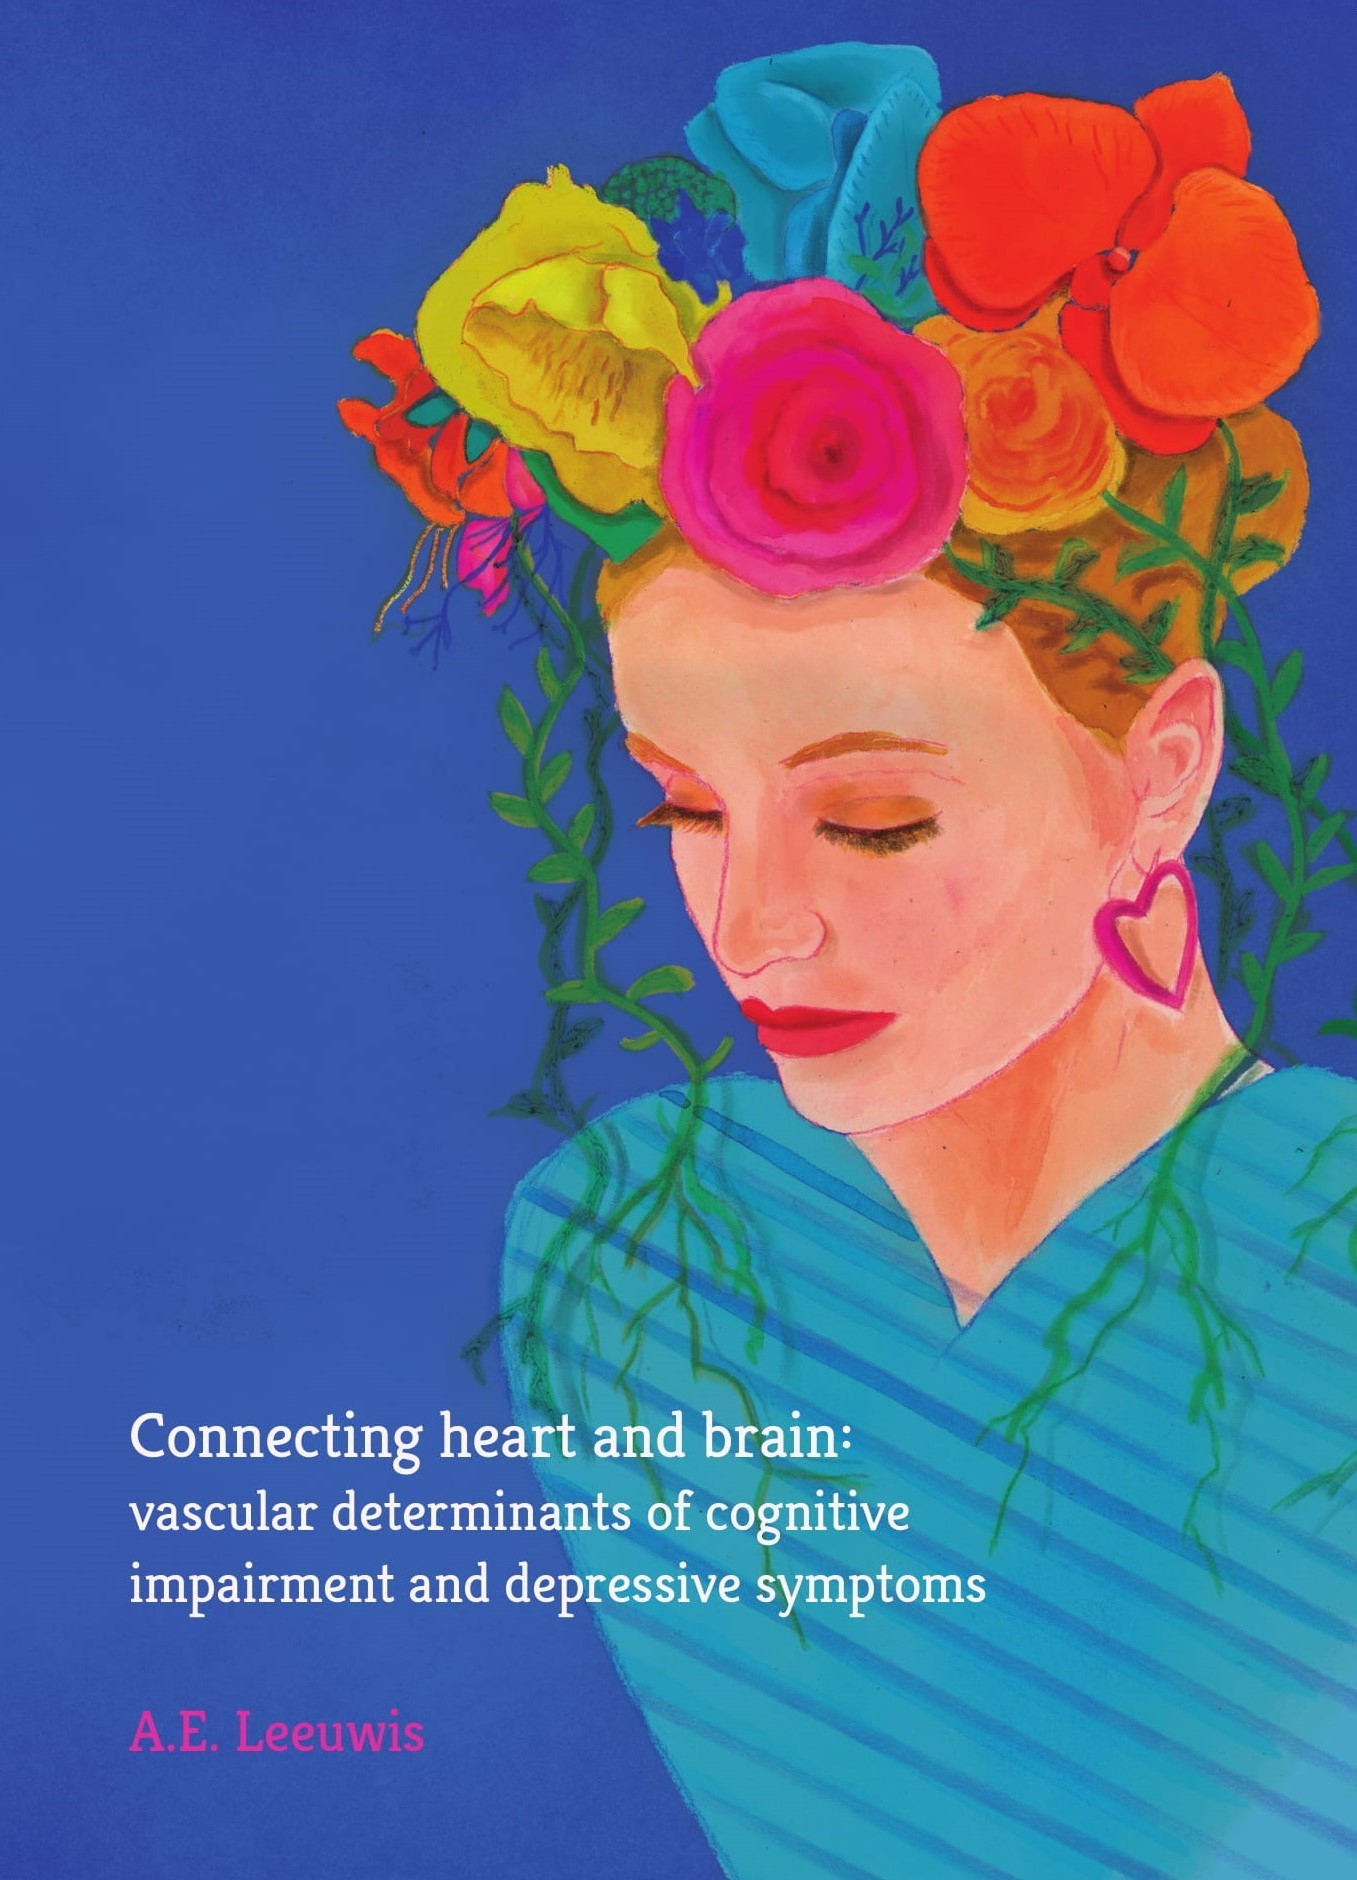 Connecting heart and brain: vascular determinants of cognitive impairment and depressive symptoms door A.E. Leeuwis